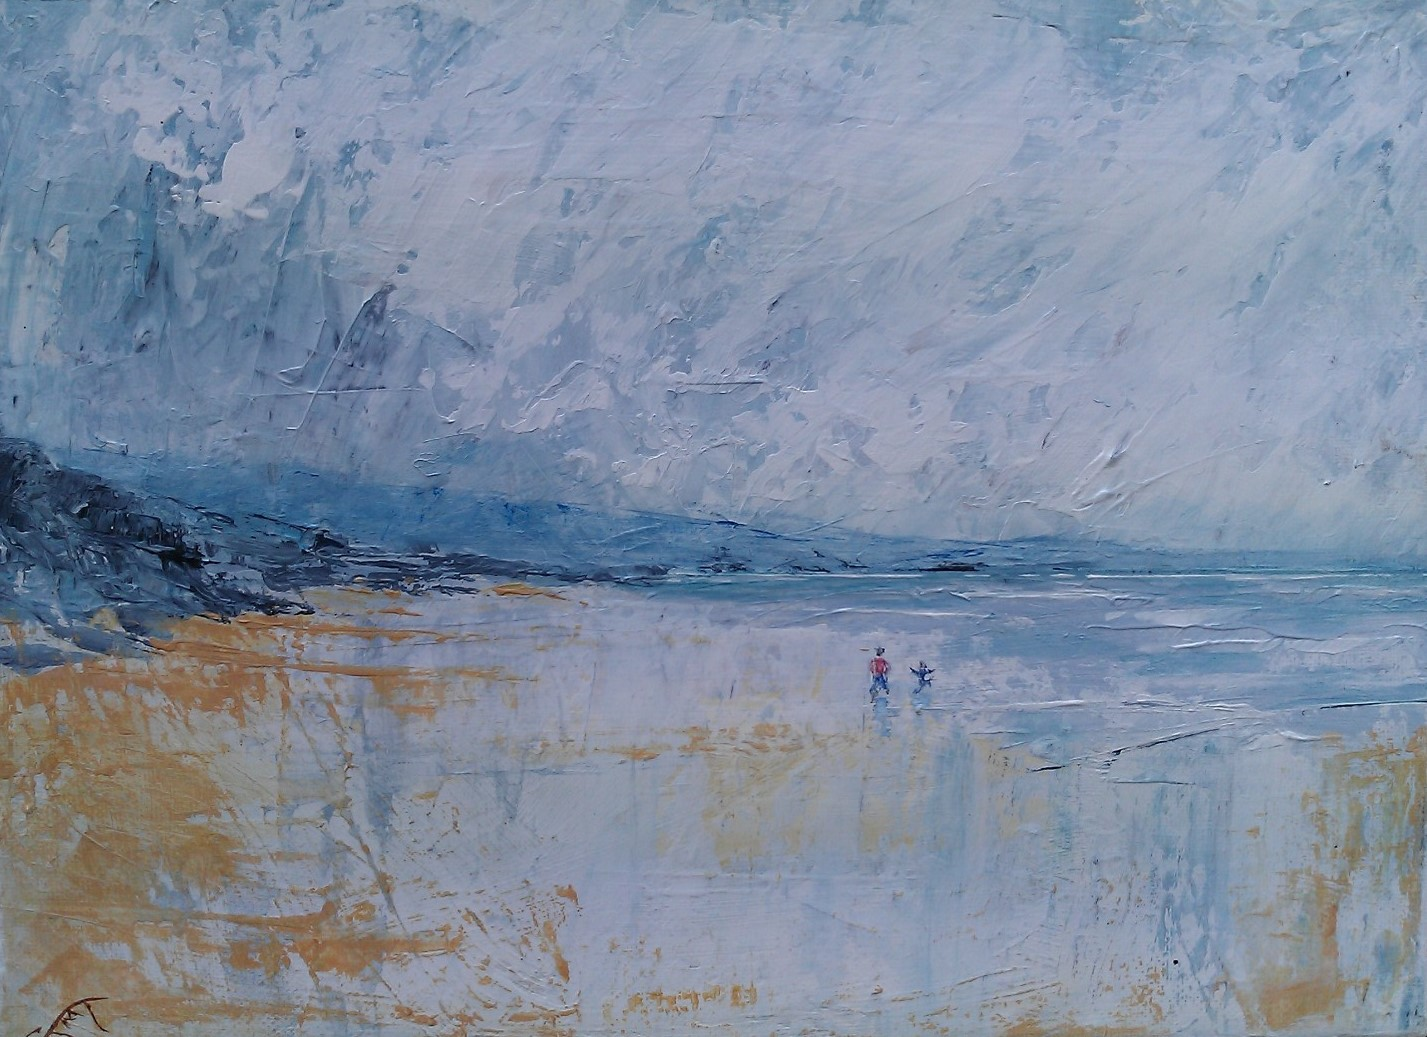 Walking on the Beach - Jacqui Thomson